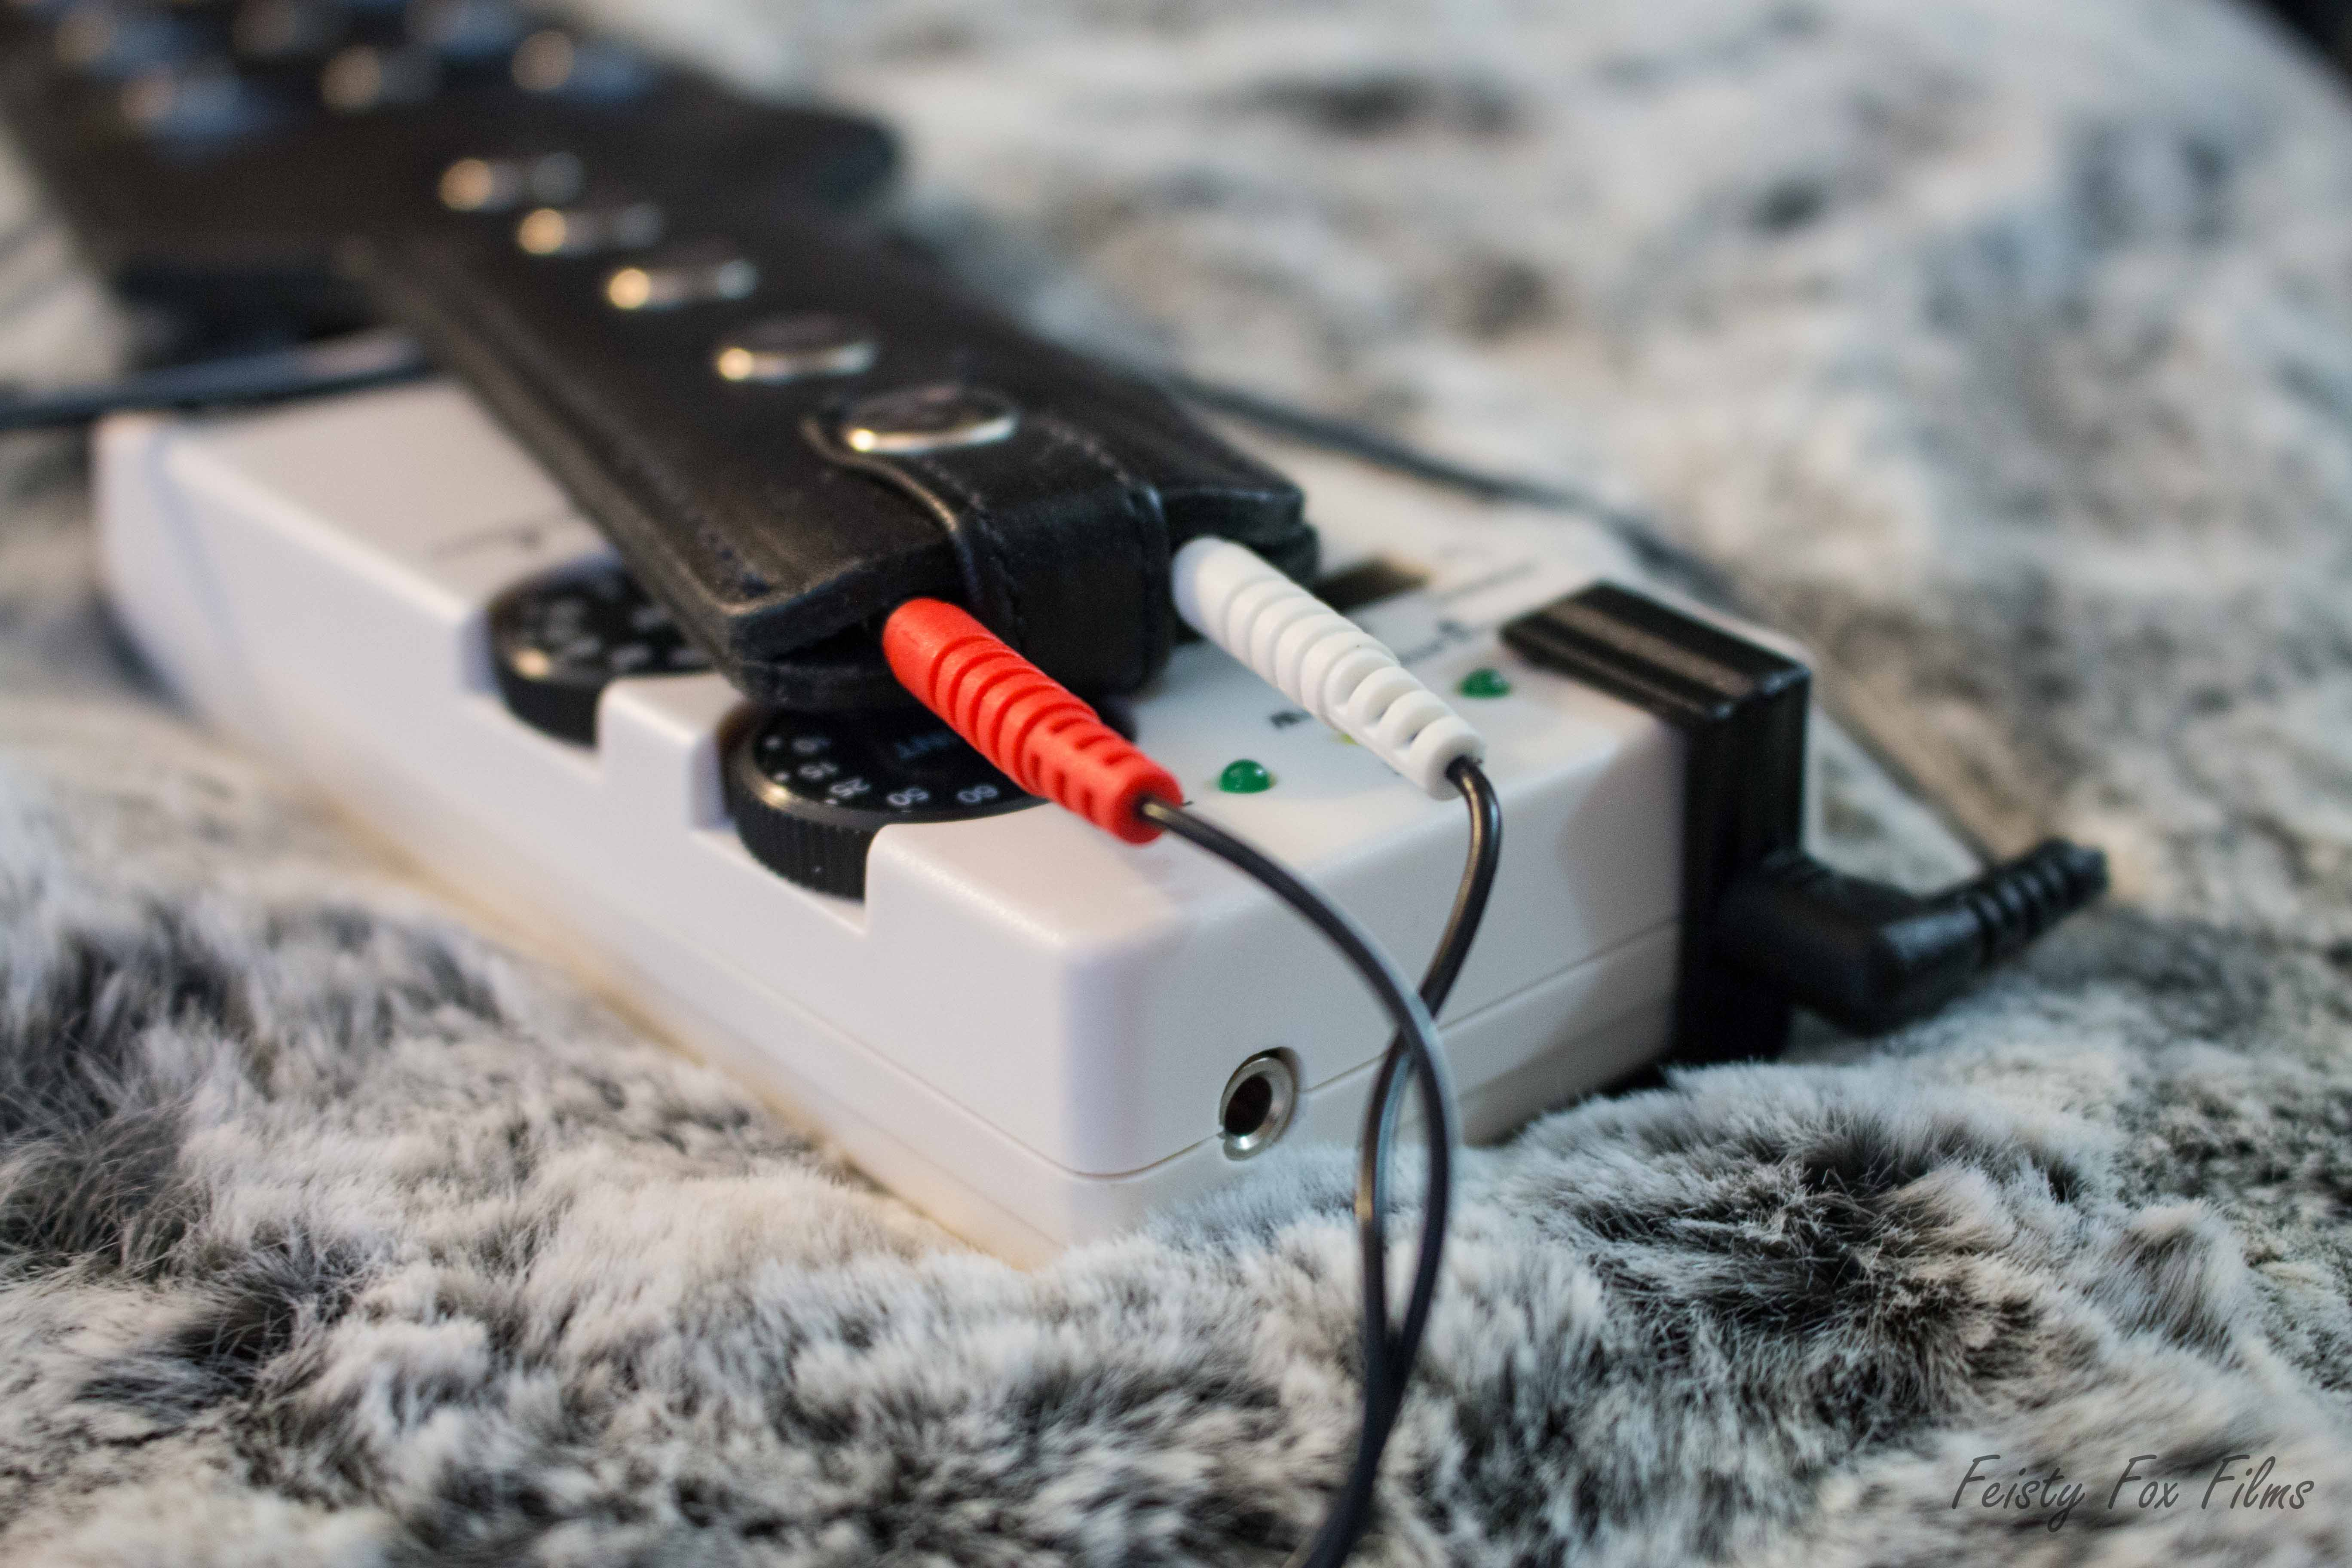 The Electro Spanking Paddle sits on top of an estim power box, which rests on top of a grey and white fake fur fabric. The shot is in focus around the handle of the paddle, where two supply cables are connected. the cord disappears out of the shot and then reappears to plug in to the power box. The box's lights aren't lit, indicating that the paddle is plugged in but not turned on.